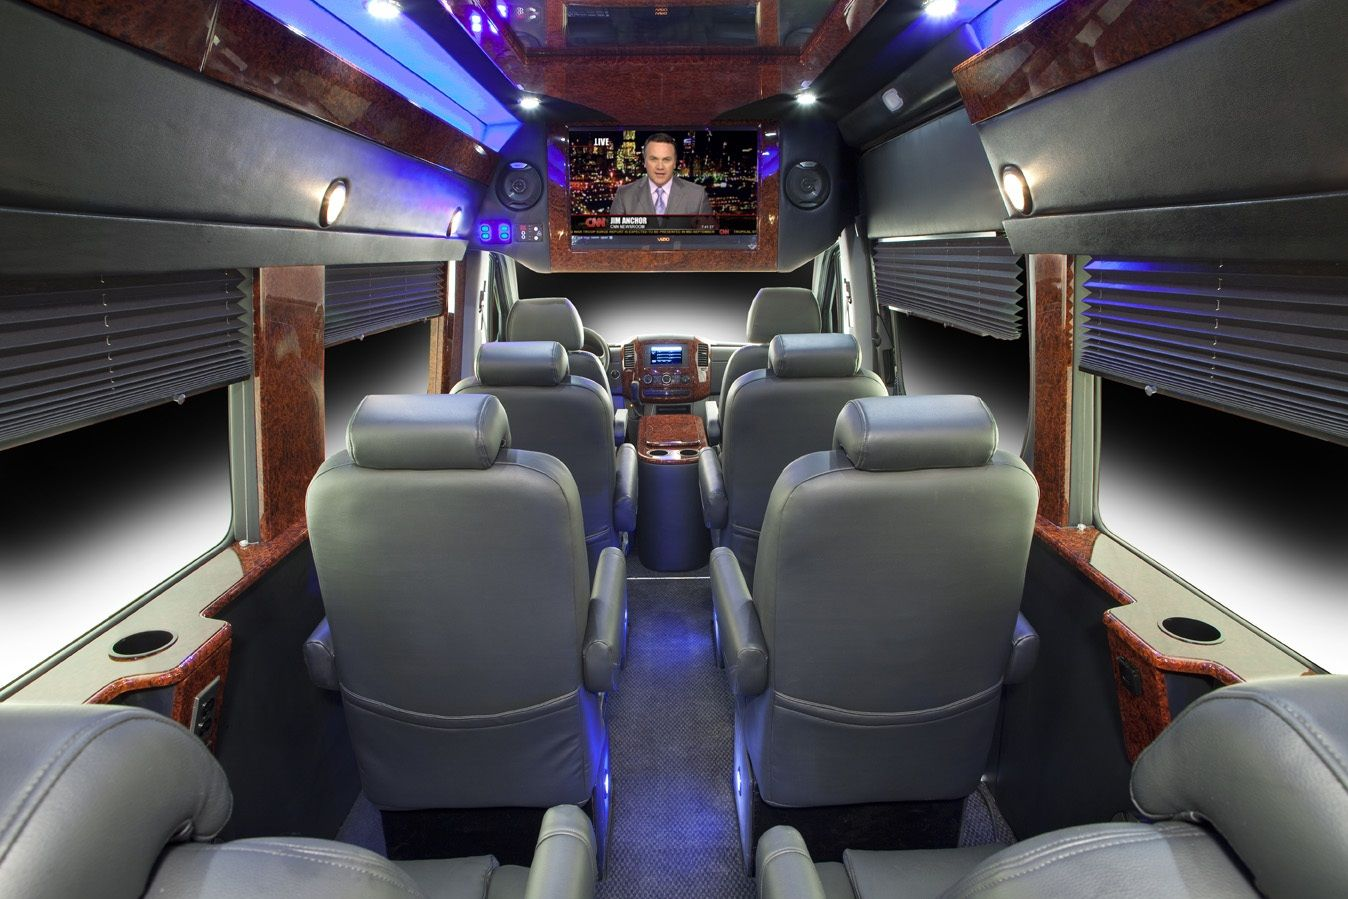 Executive Sprinter Van Seats 10 Passengers Luggage Capacity 10 Black Exterior And Leather Interior Forward Facin Luxury Bus Luxury Van Sprinter Passenger Van